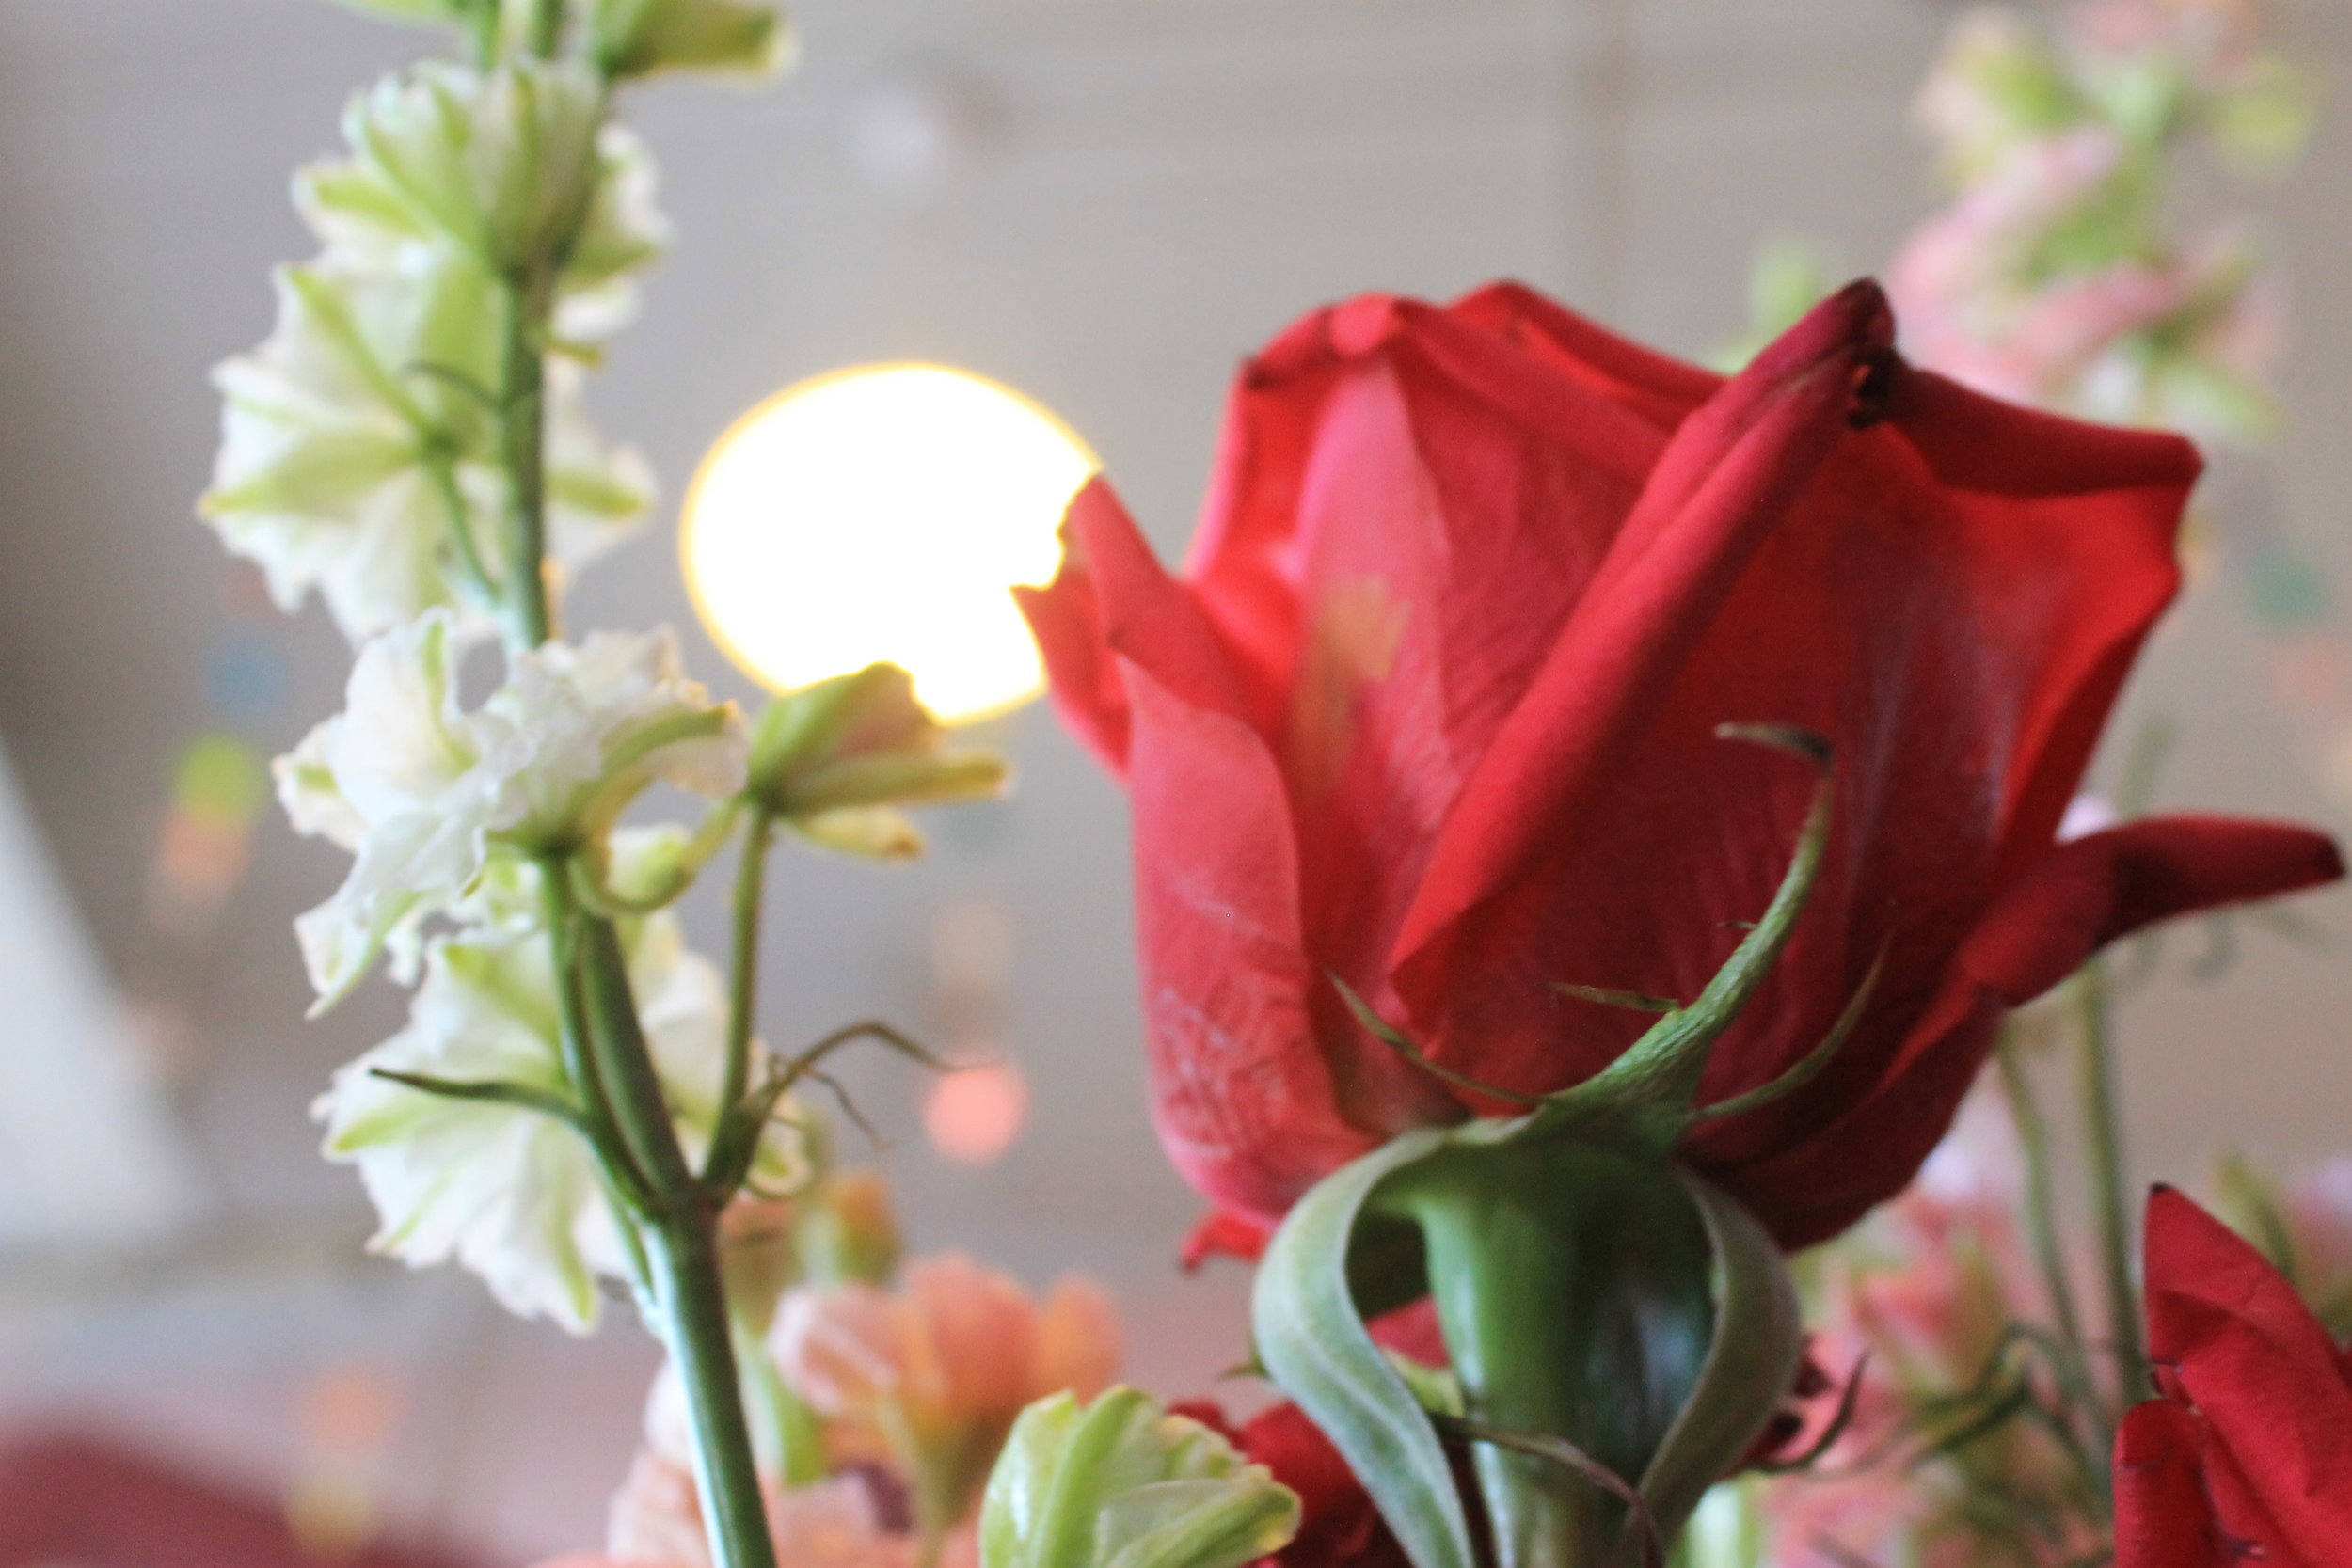 """Fresh cut flowers donated by Relles Florist adorn every breakfast table at Wellspring Women's Center. They are part of Wellspring's mission to serve it's guests in an atmosphere of """"hospitality, dignity and love."""""""